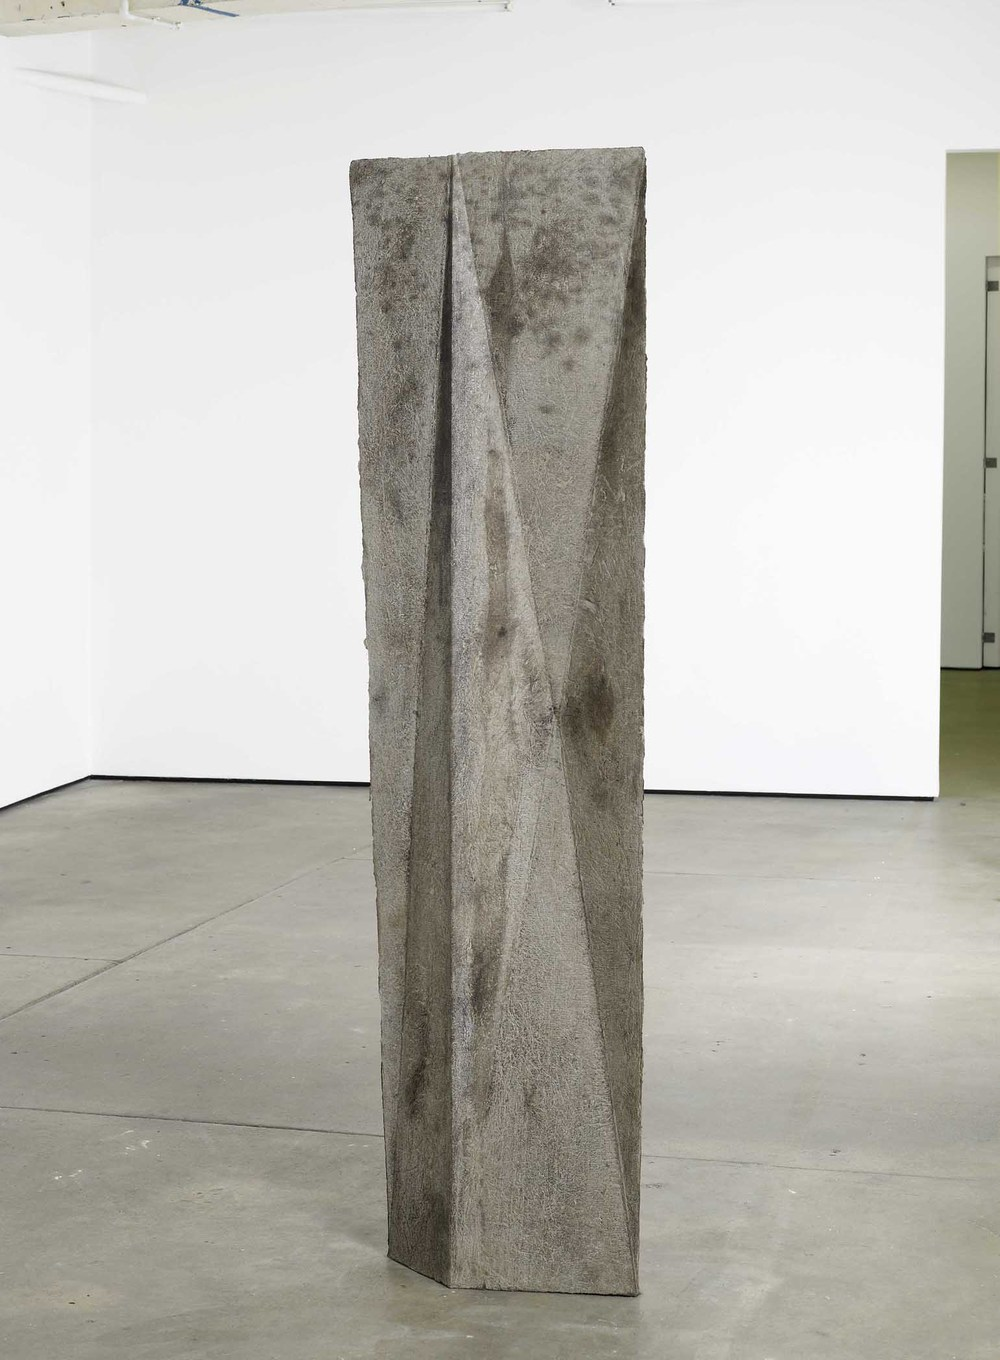 Michael Dean  you (working title) 2010 Concrete 200 x 52 x 20 cm / 78.7 x 20.5 x 7.9 In